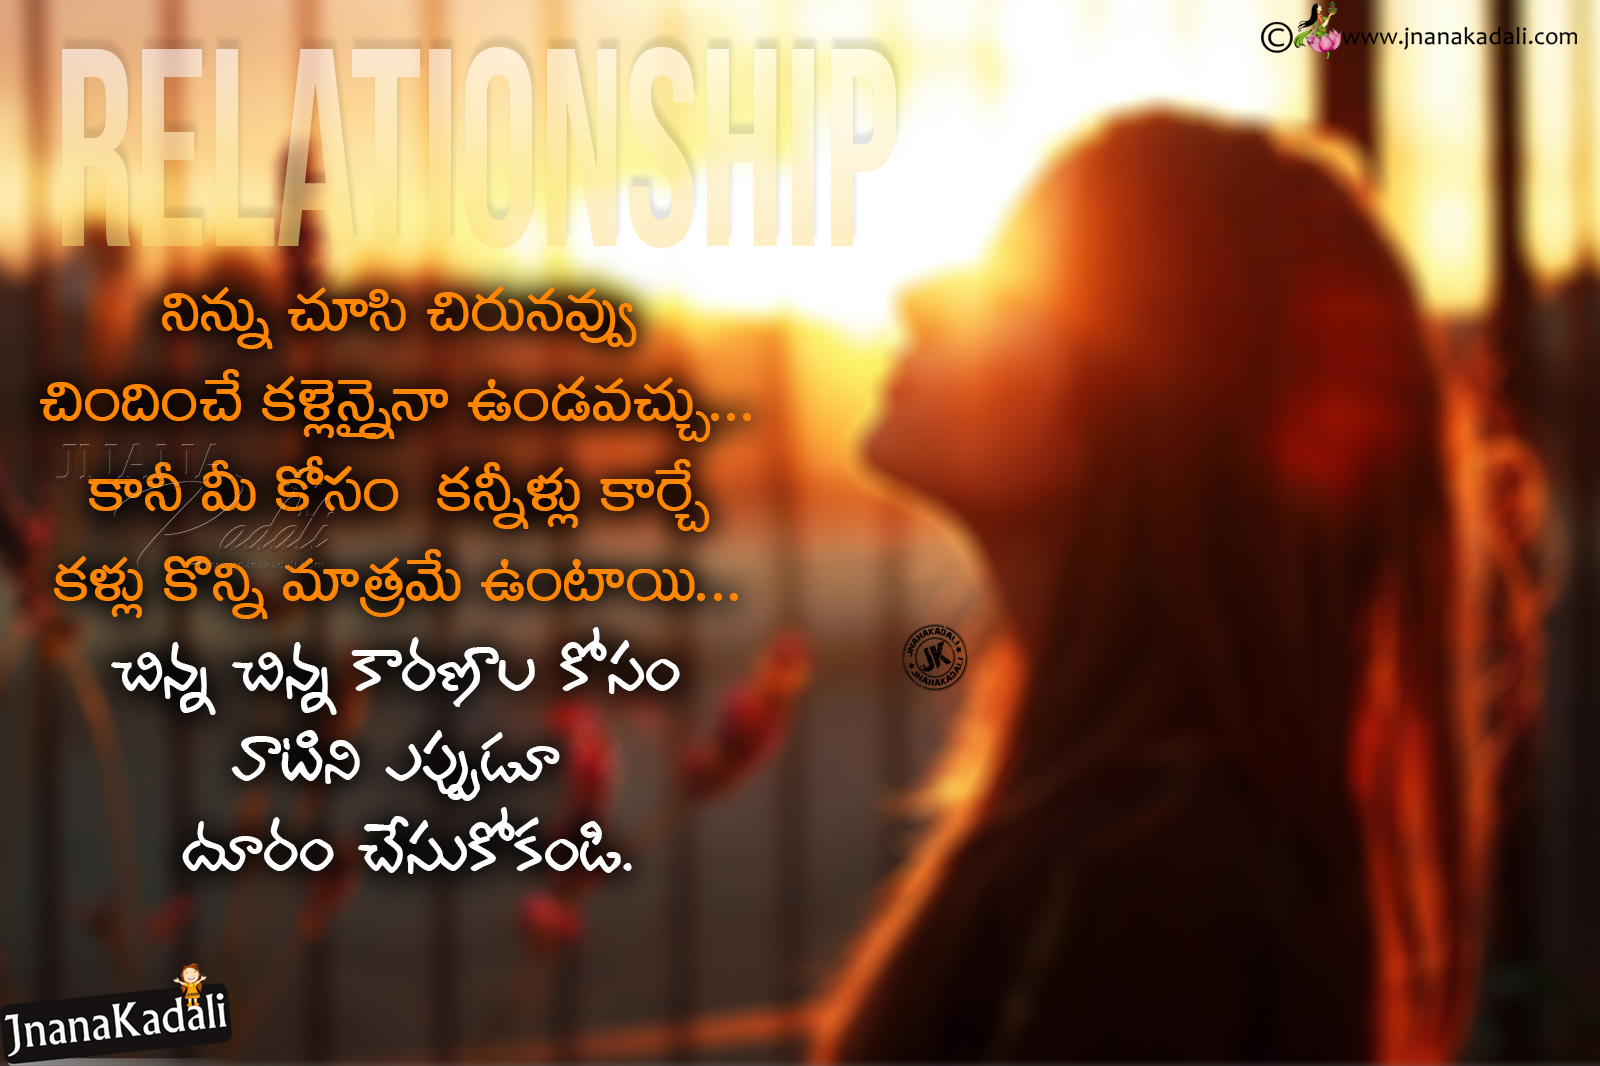 Love Quotes Wallpapers Free Download In Hindi Heart Touching Telugu Relationship Quotes Hd Wallpapers In